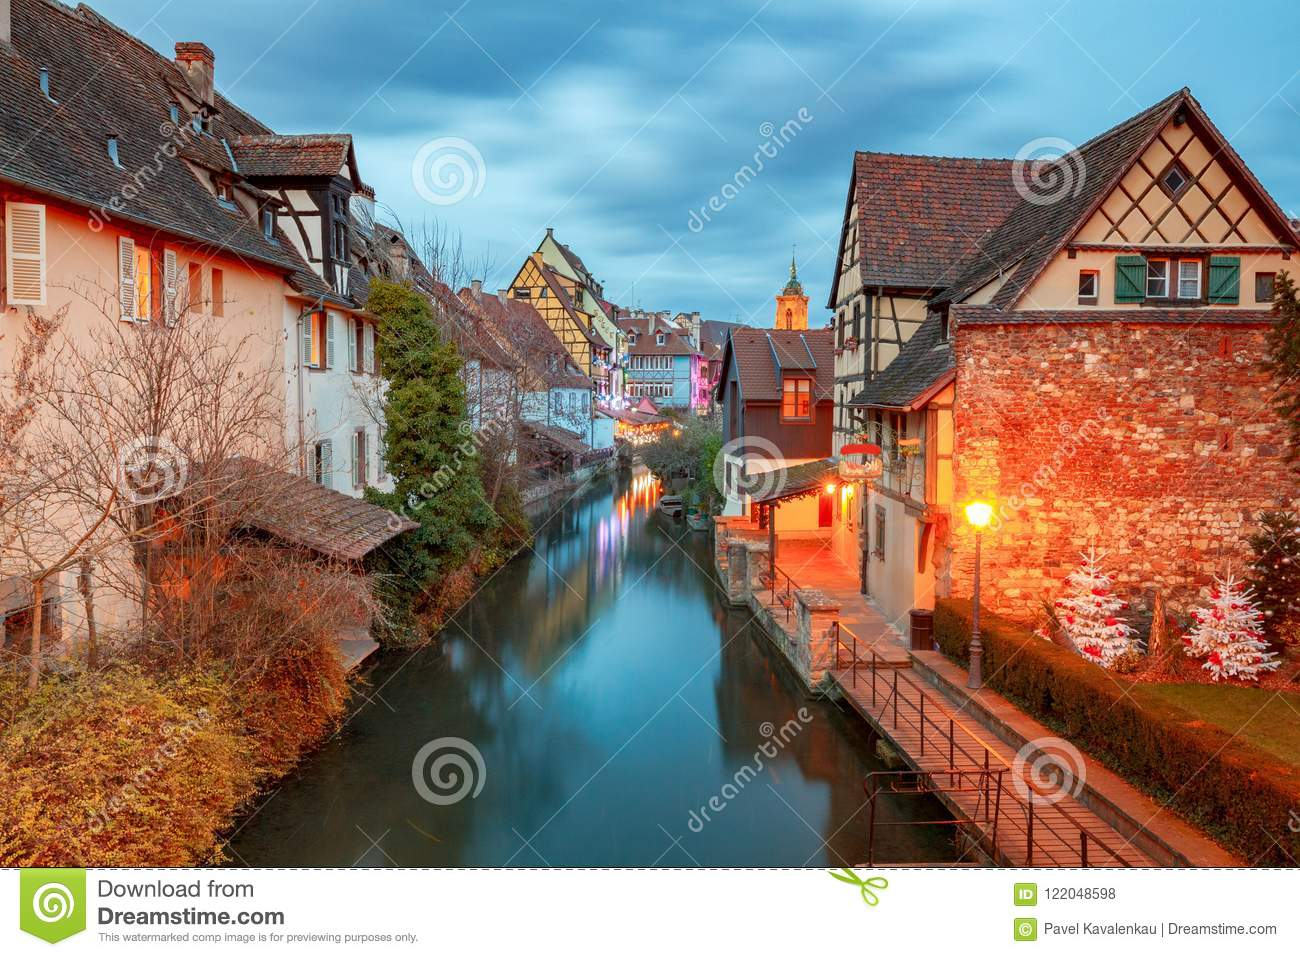 traditional old half timbered houses in the historic city of colmar decorated and lighted during the christmas season alsace france